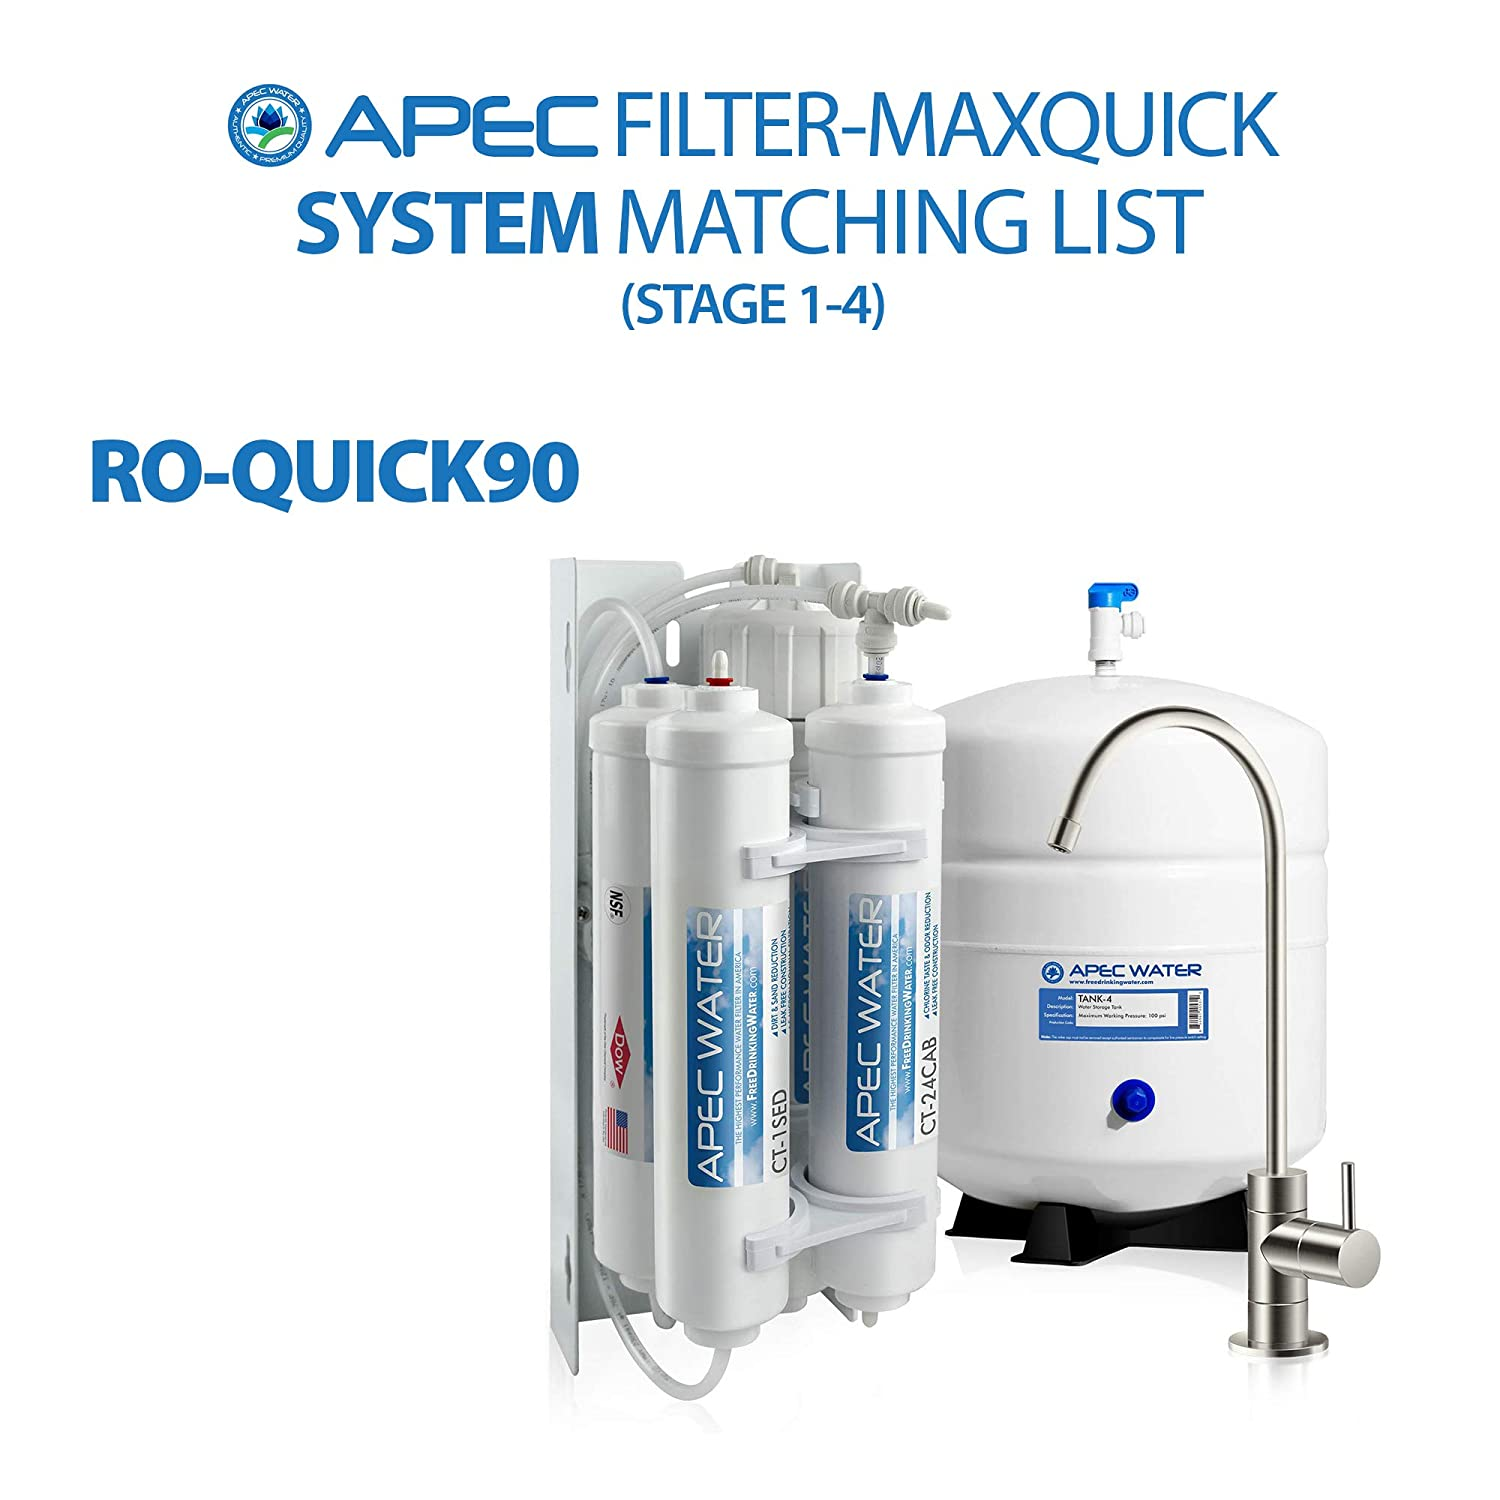 APEC WATER Systems Filter-MAXQUICK US Made 90 GPD Complete Replacement Filter Set for Ultimate Series Reverse Osmosis Water Filter System RO-QUICK90 Stage 1-4